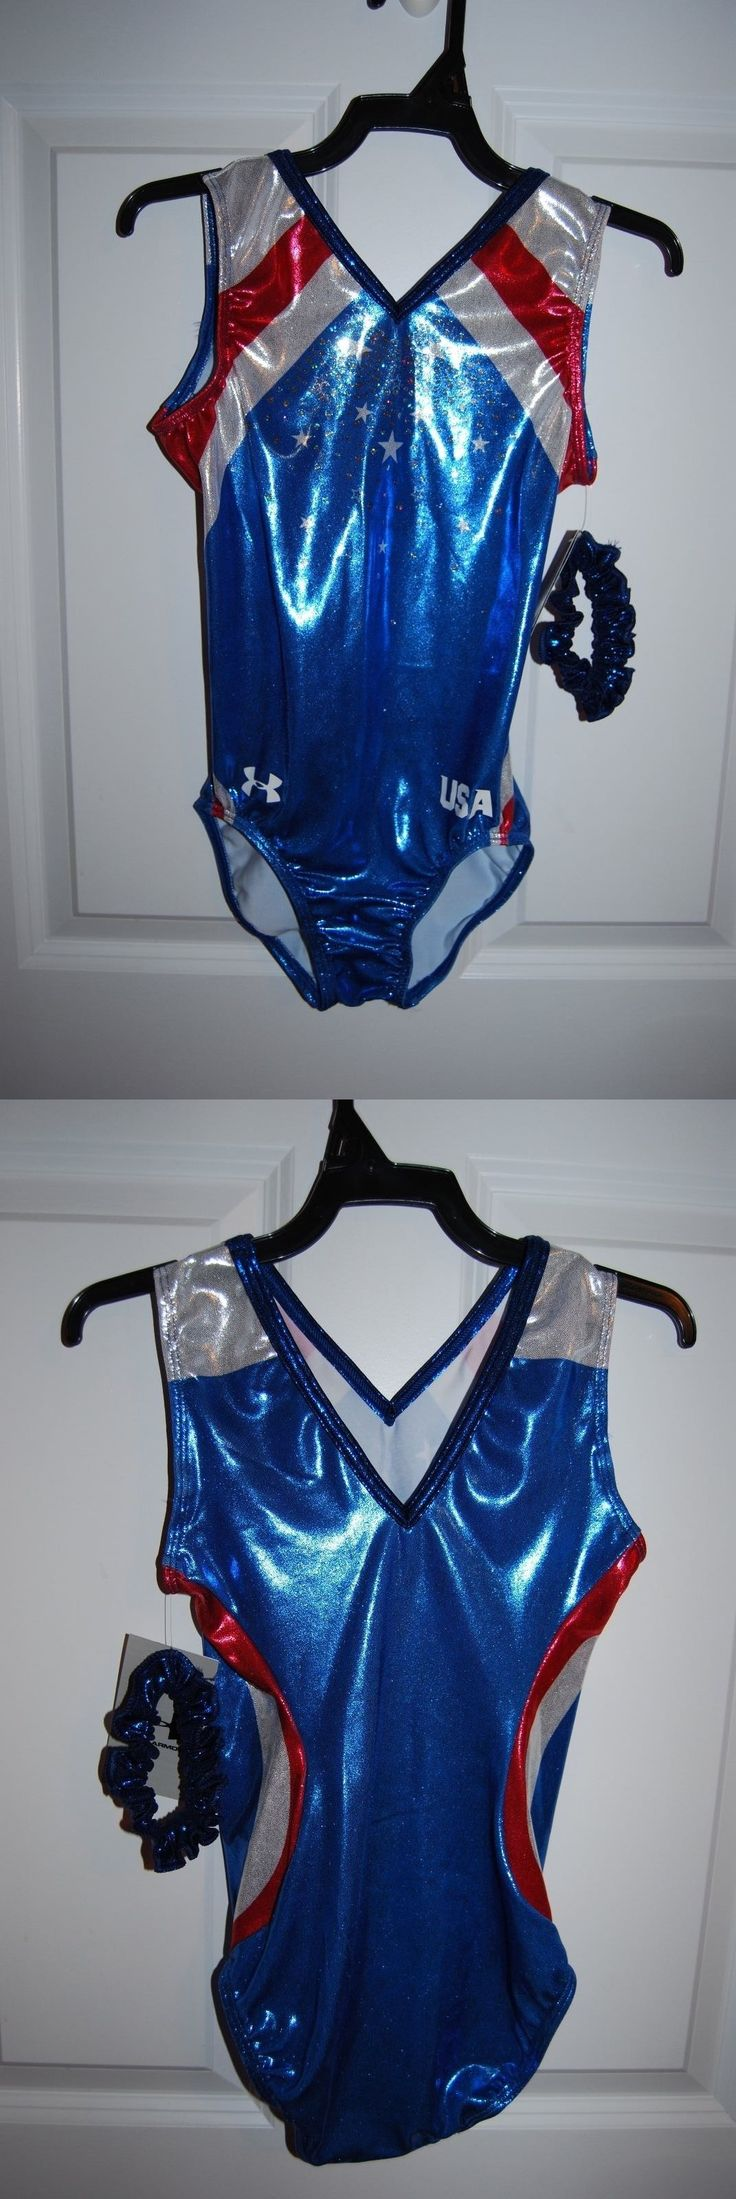 Youth 159170: Gk Elite Gymnastics Leotard - Under Armour - Adult Large - Noble -> BUY IT NOW ONLY: $49.95 on eBay!